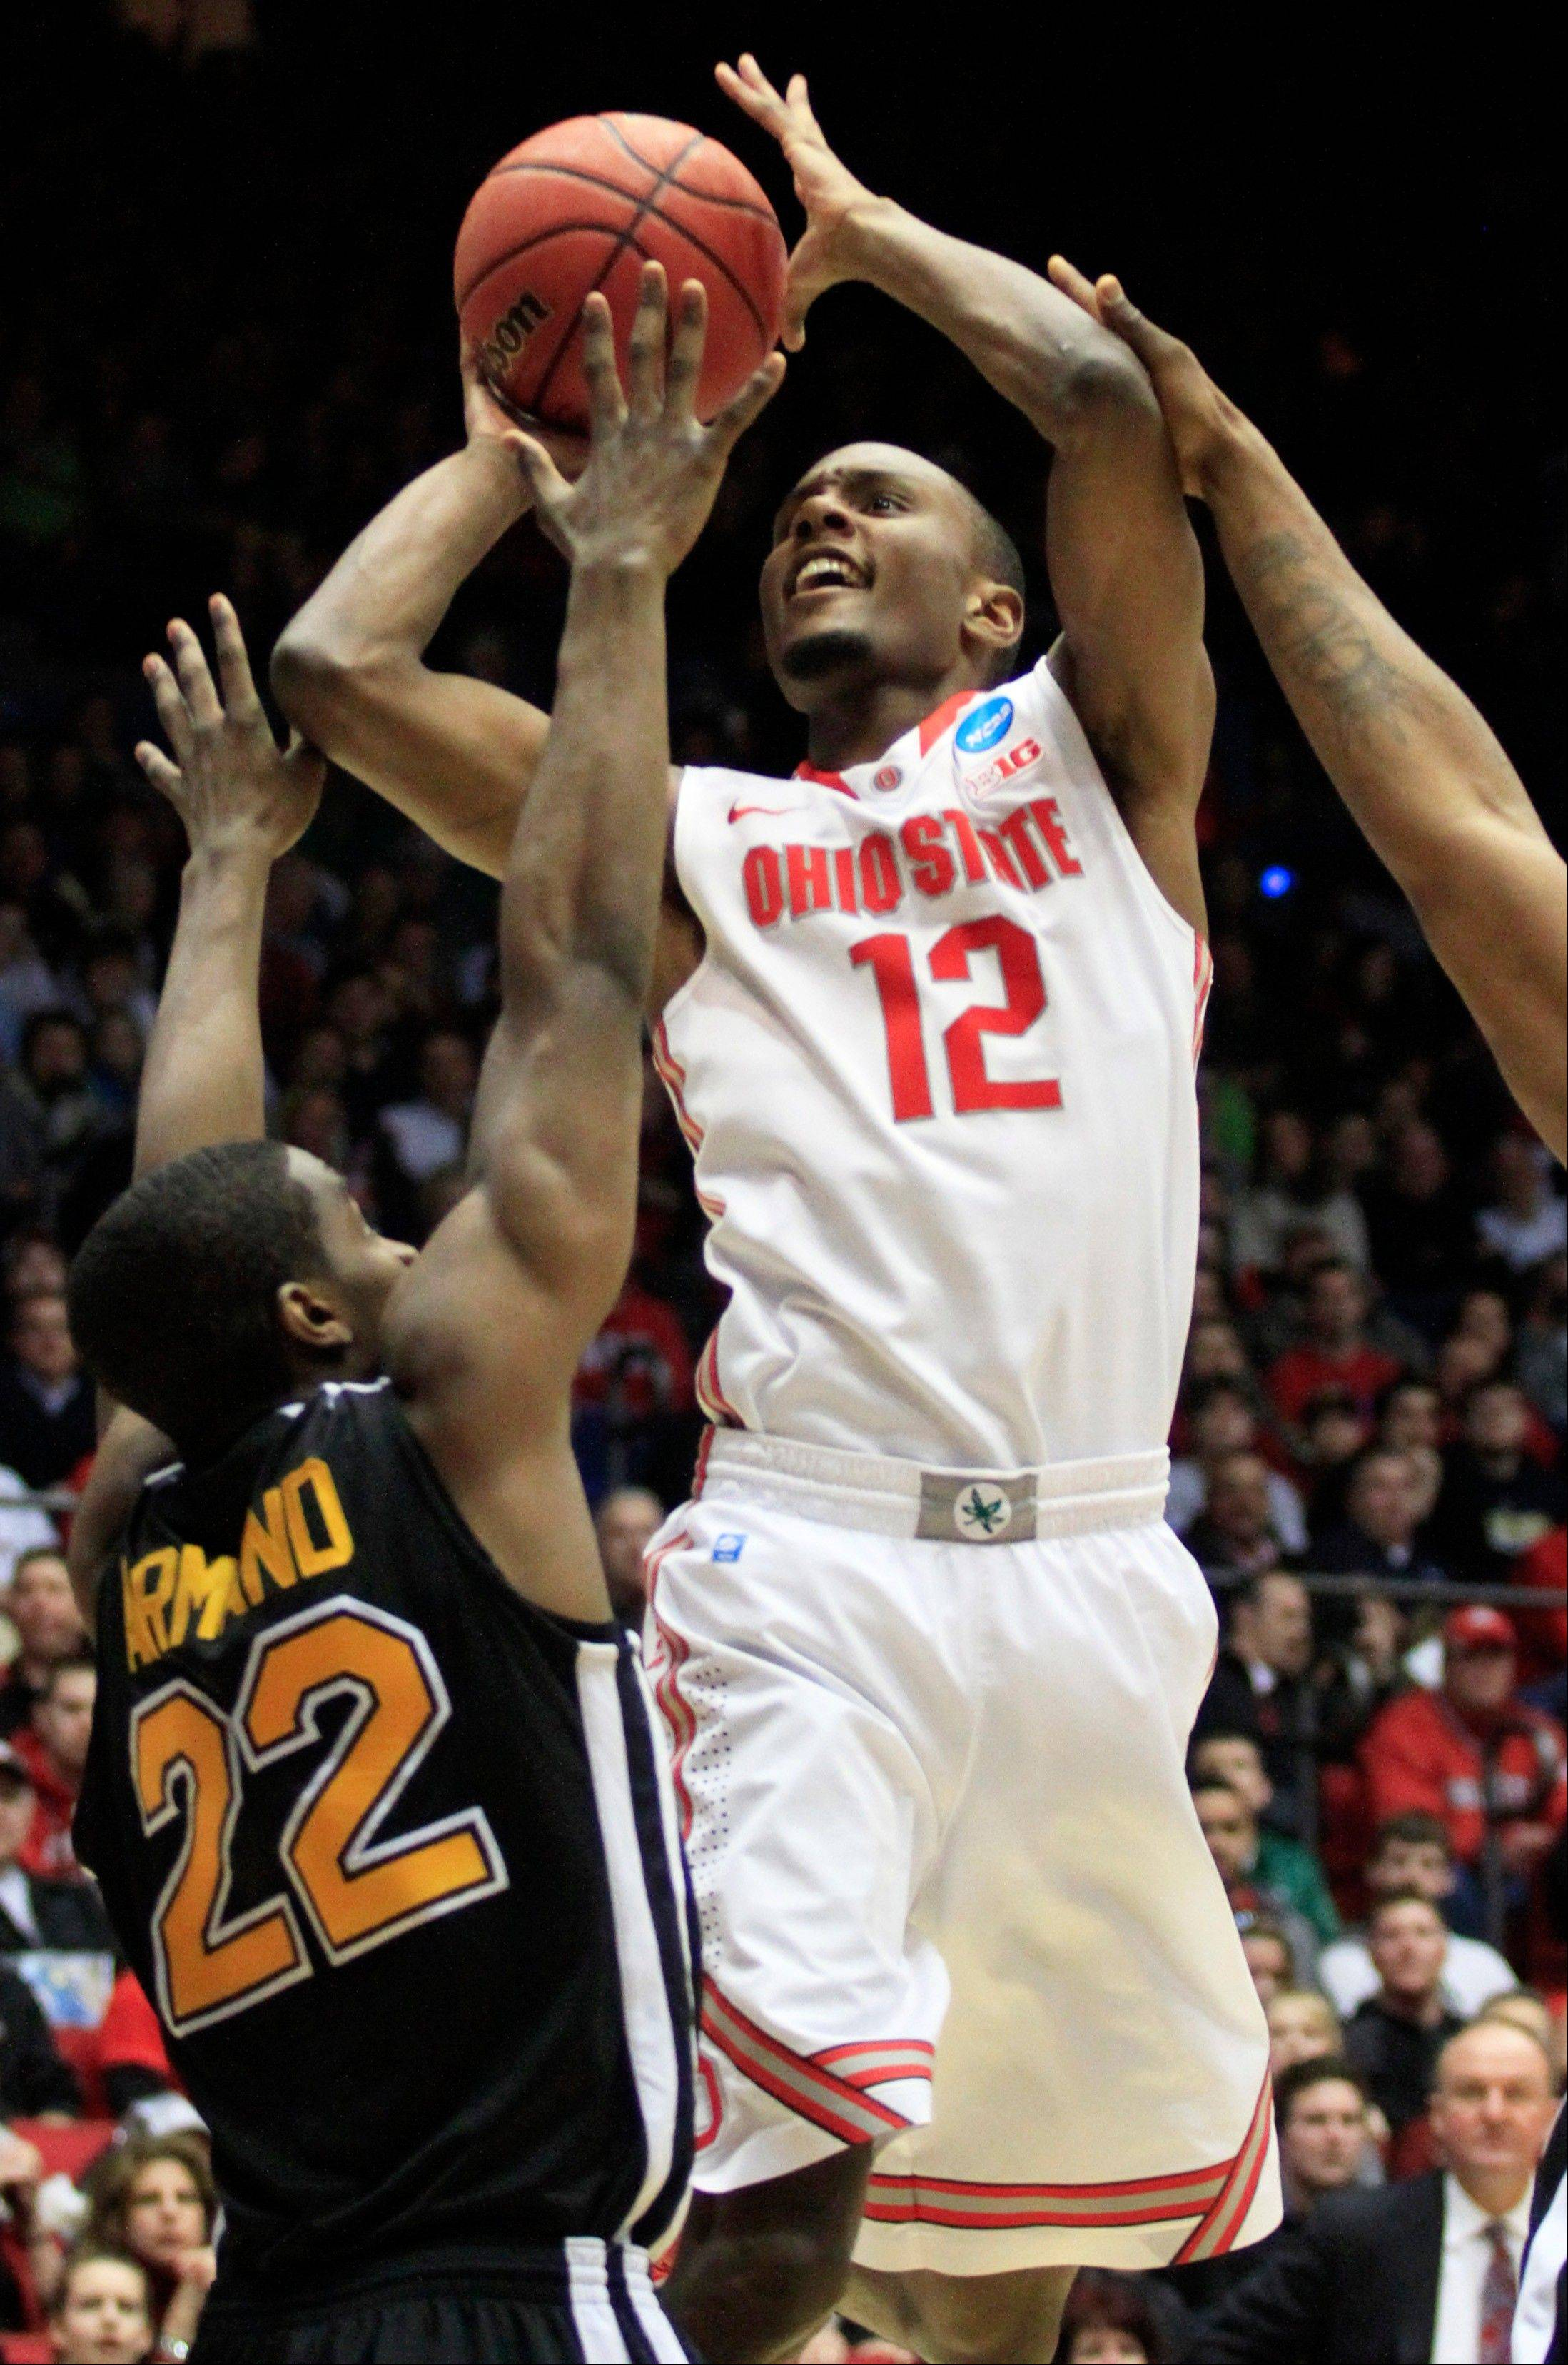 Ohio State forward Sam Thompson (12) shoots against Iona guard Sean Armand (22) in the second half of a second-round game at the NCAA college basketball tournament, Friday, March 22, 2013, in Dayton, Ohio. (AP Photo/Skip Peterson)